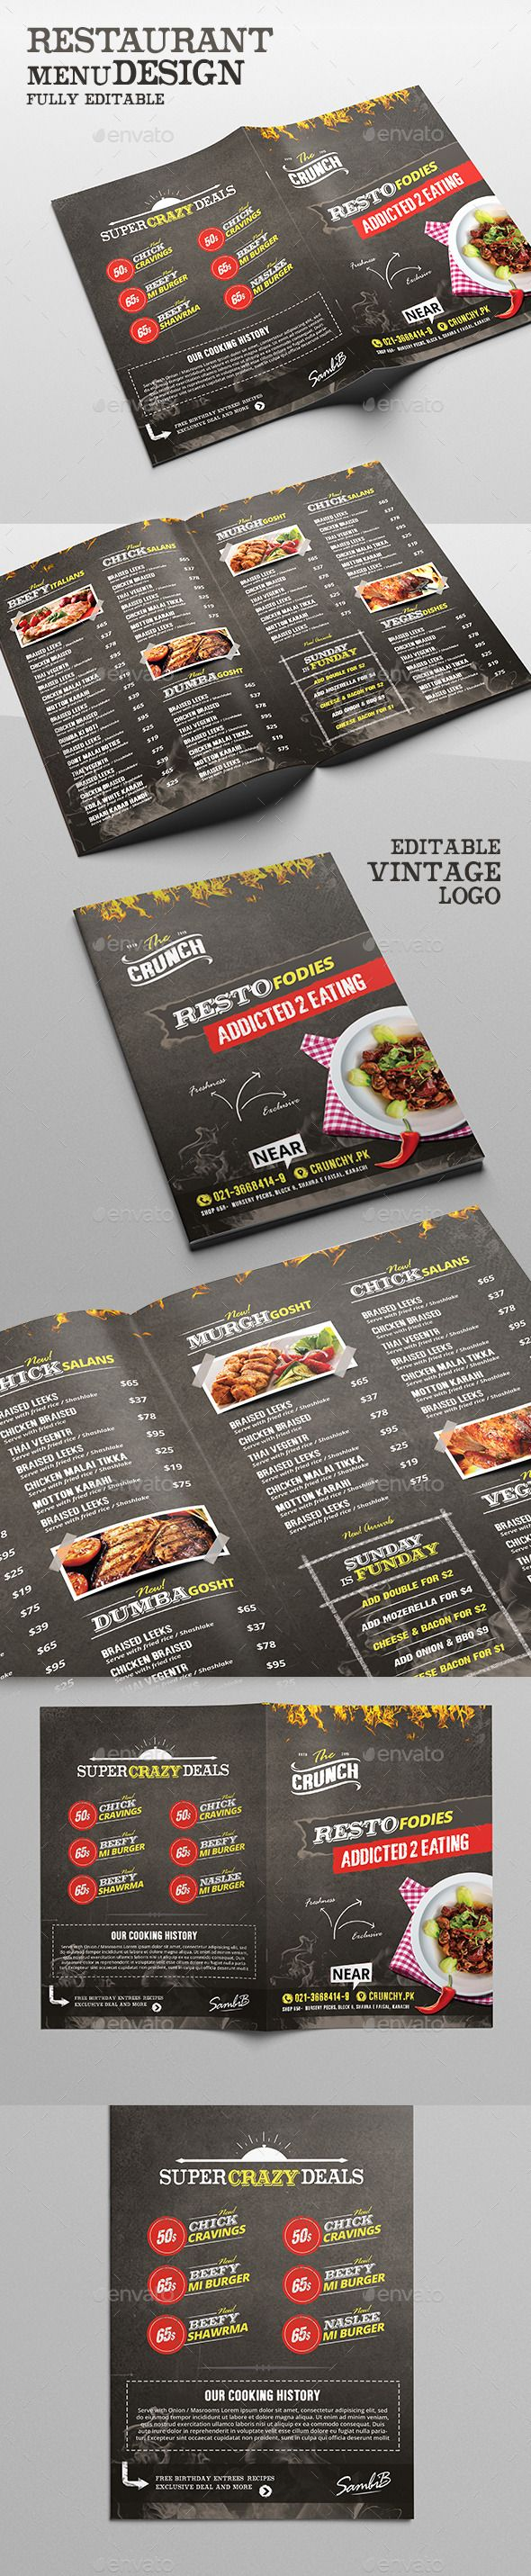 Food Menu - Chalk Board Restaurant Template #design Download: http://graphicriver.net/item/food-menu-chalk-board-restaurant/12589635?ref=ksioks